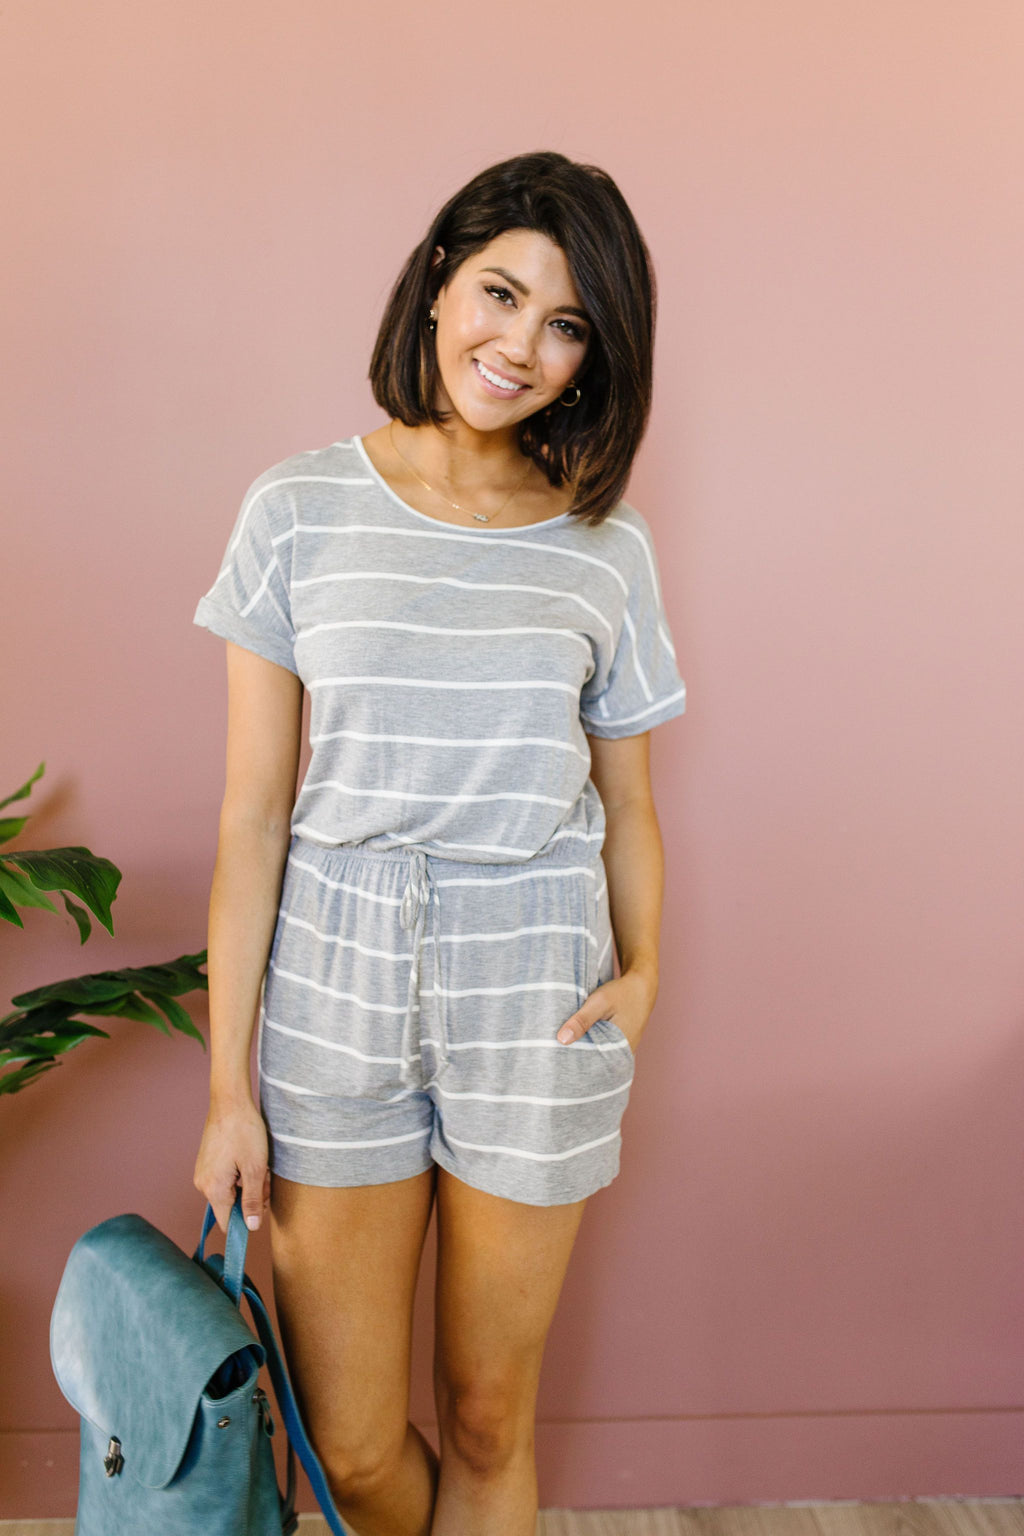 Comfort Stripes Romper In Heather Gray-1XL, 2XL, 3XL, 6-16-2020, 6-26-2020, Bonus, Bottoms, Group A, Group B, Group C, Large, Medium, Plus, Small, XL, XS-Womens Artisan USA American Made Clothing Accessories